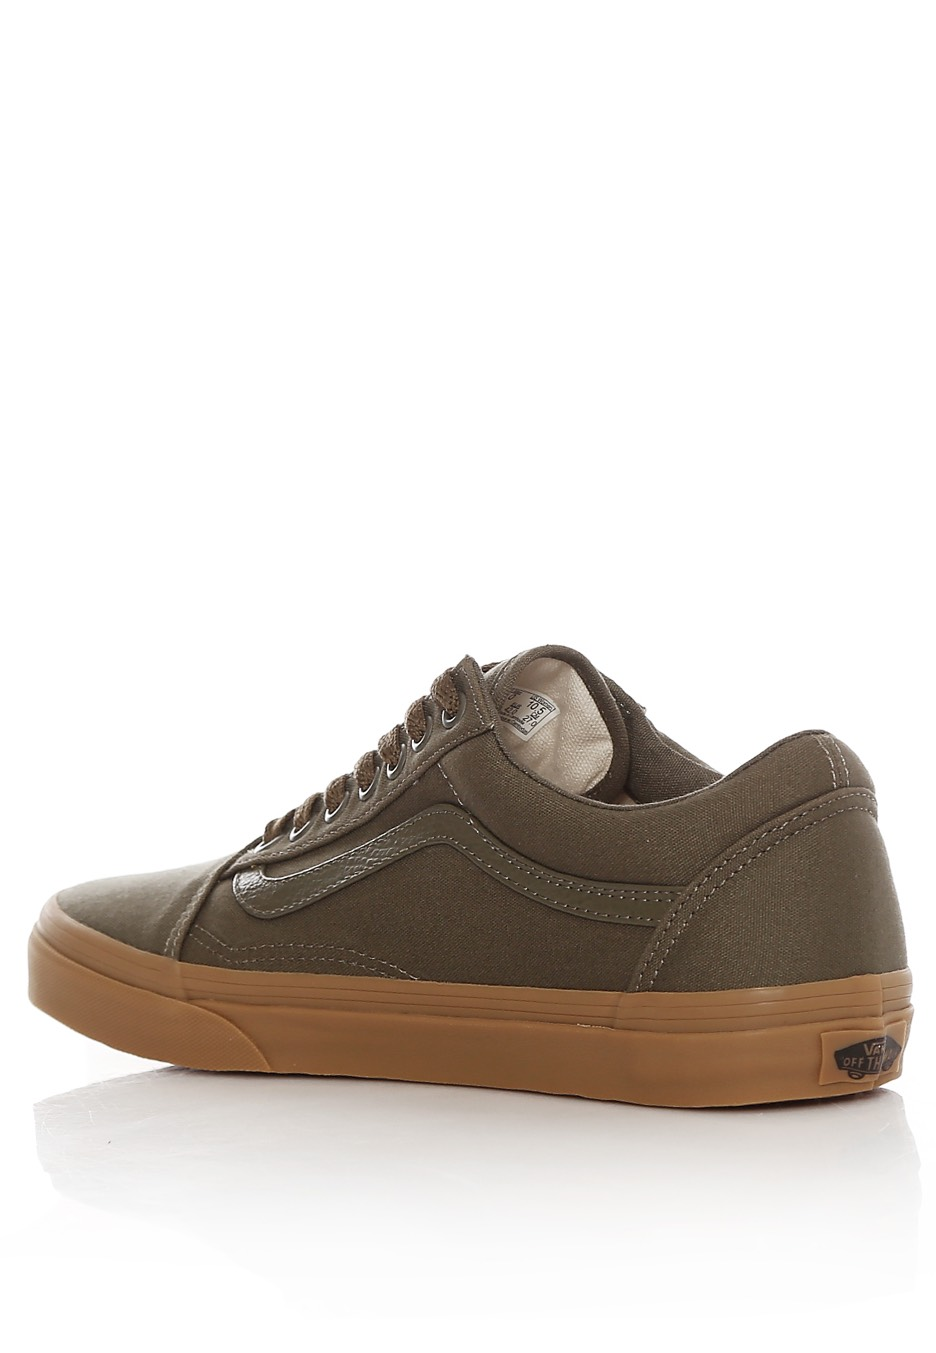 0faff085098248 Vans - Old Skool Canvas Gum Ivy Green Light Gum - Shoes - Impericon ...